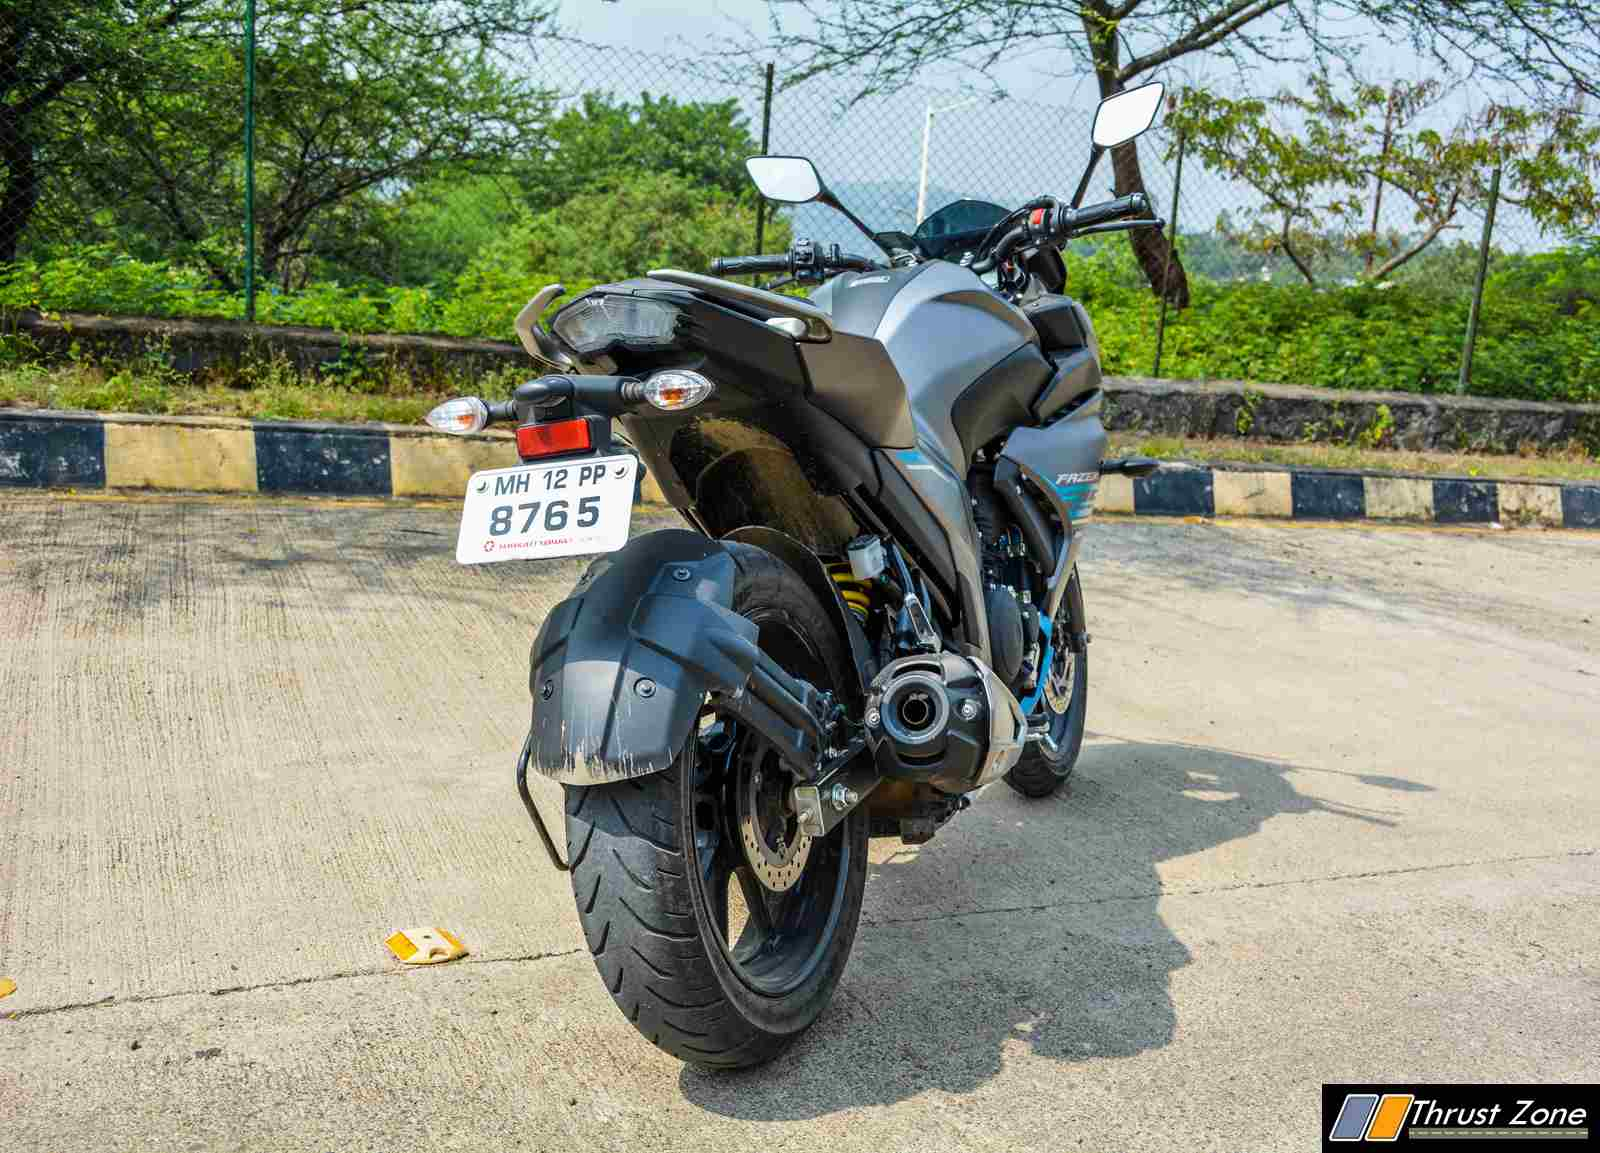 https://www.thrustzone.com/wp-content/uploads/2017/11/2017-Yamaha-Fazer-25-Review-11-of-17.jpg